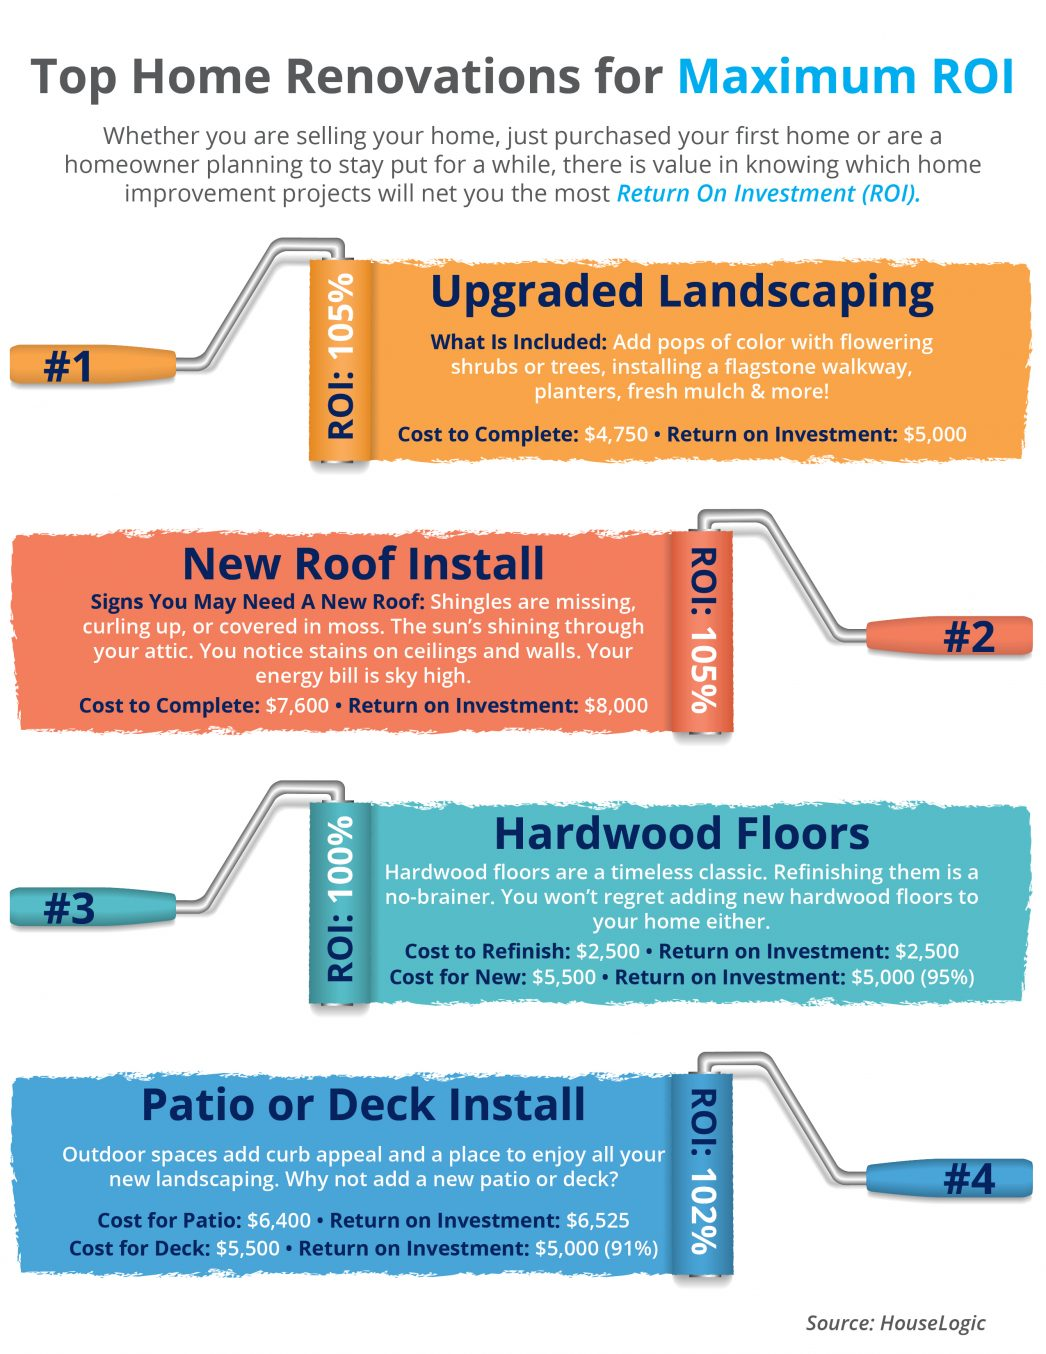 Top 4 Home Renovations For Maximum Return On Investment